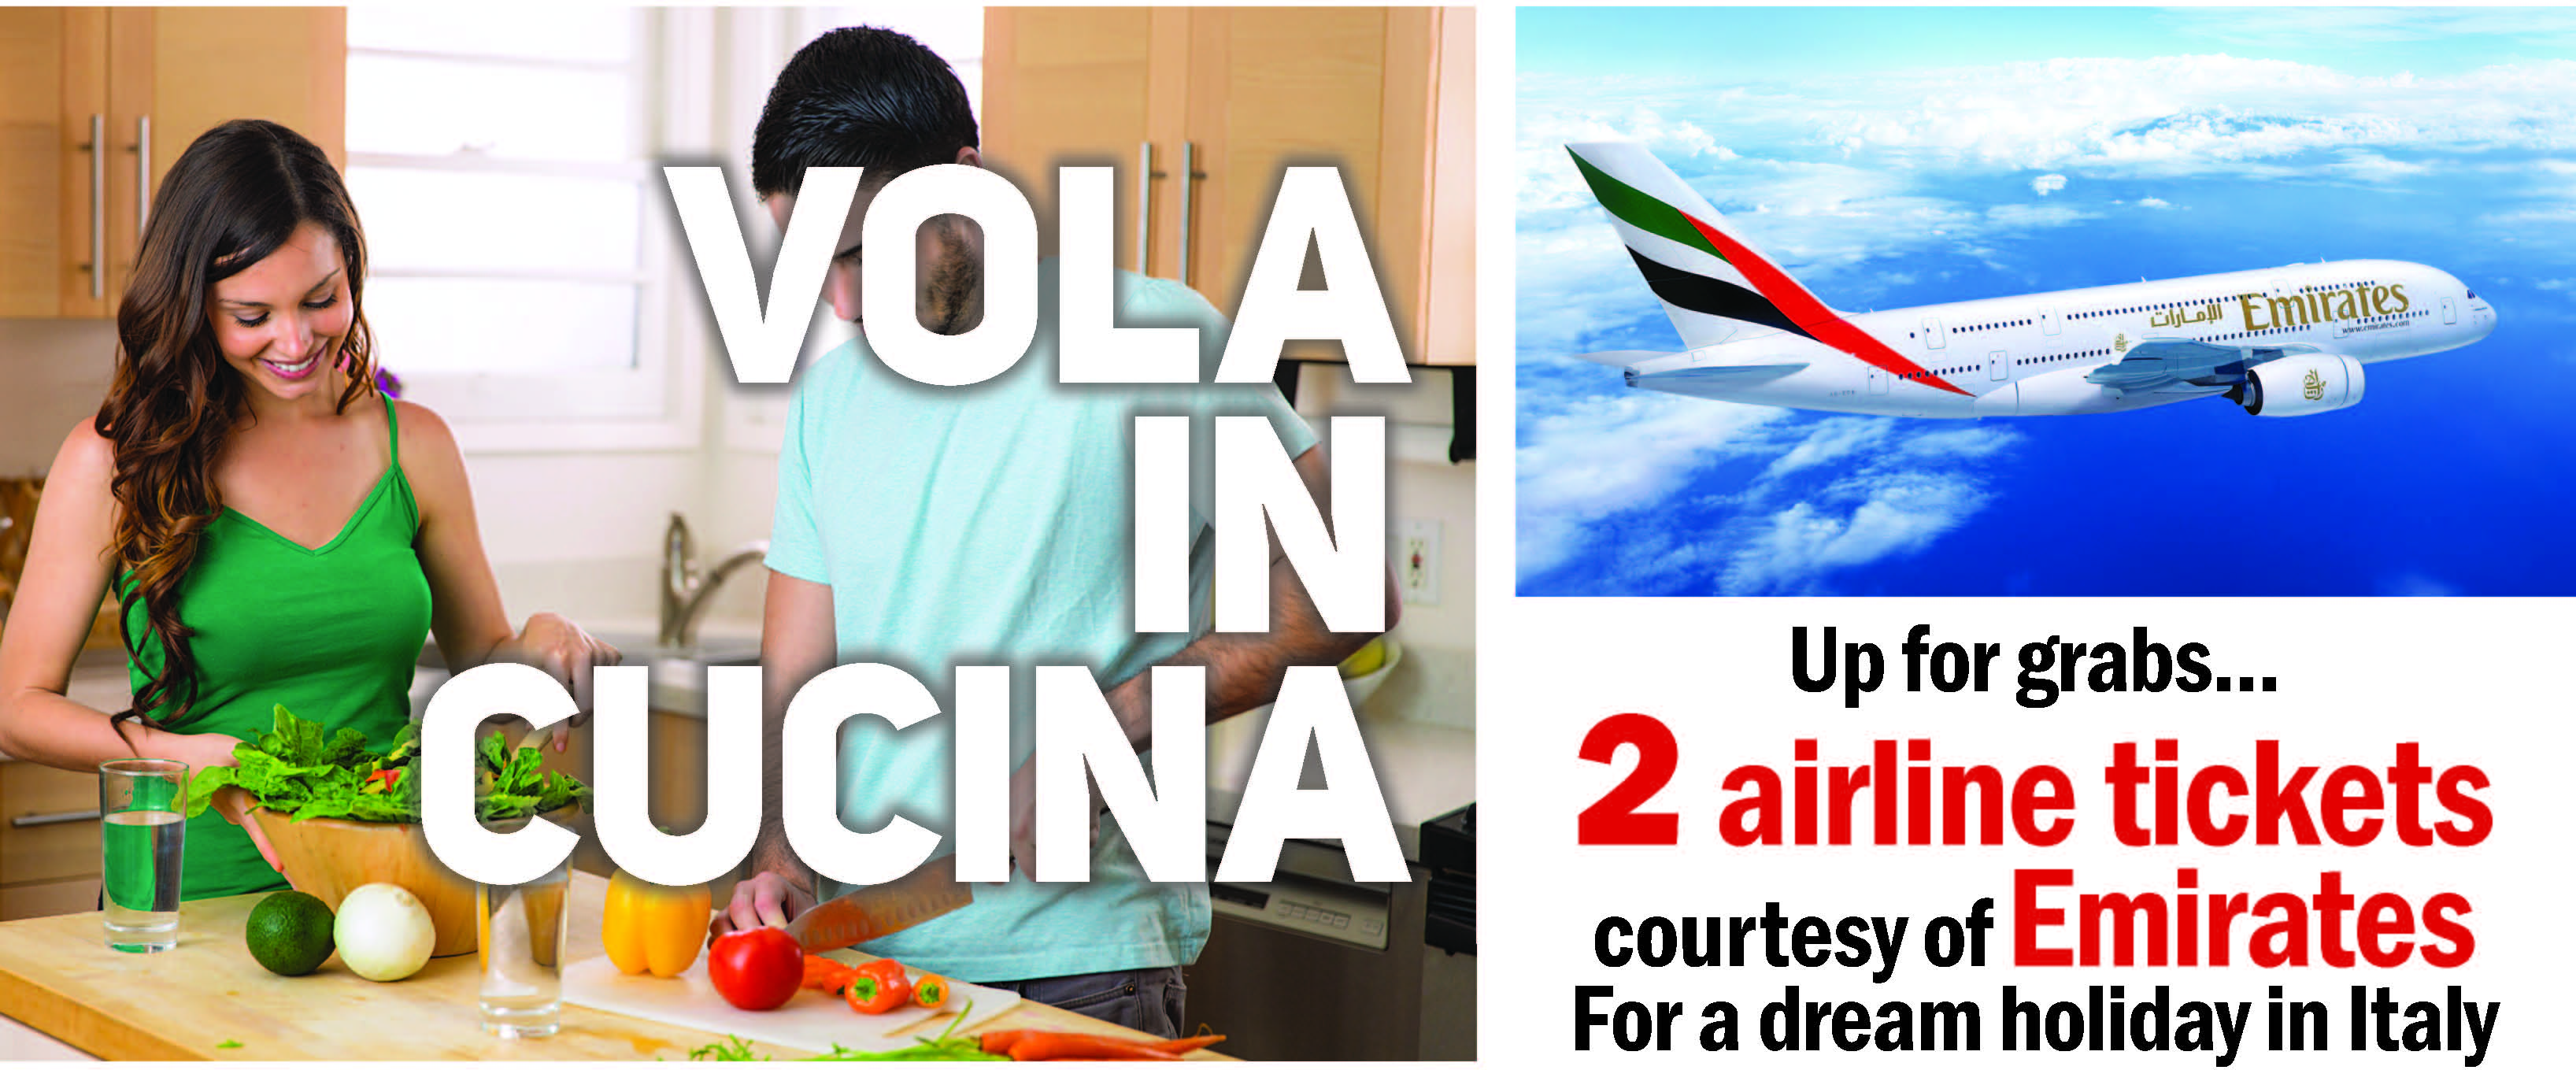 Vola in cucina competition